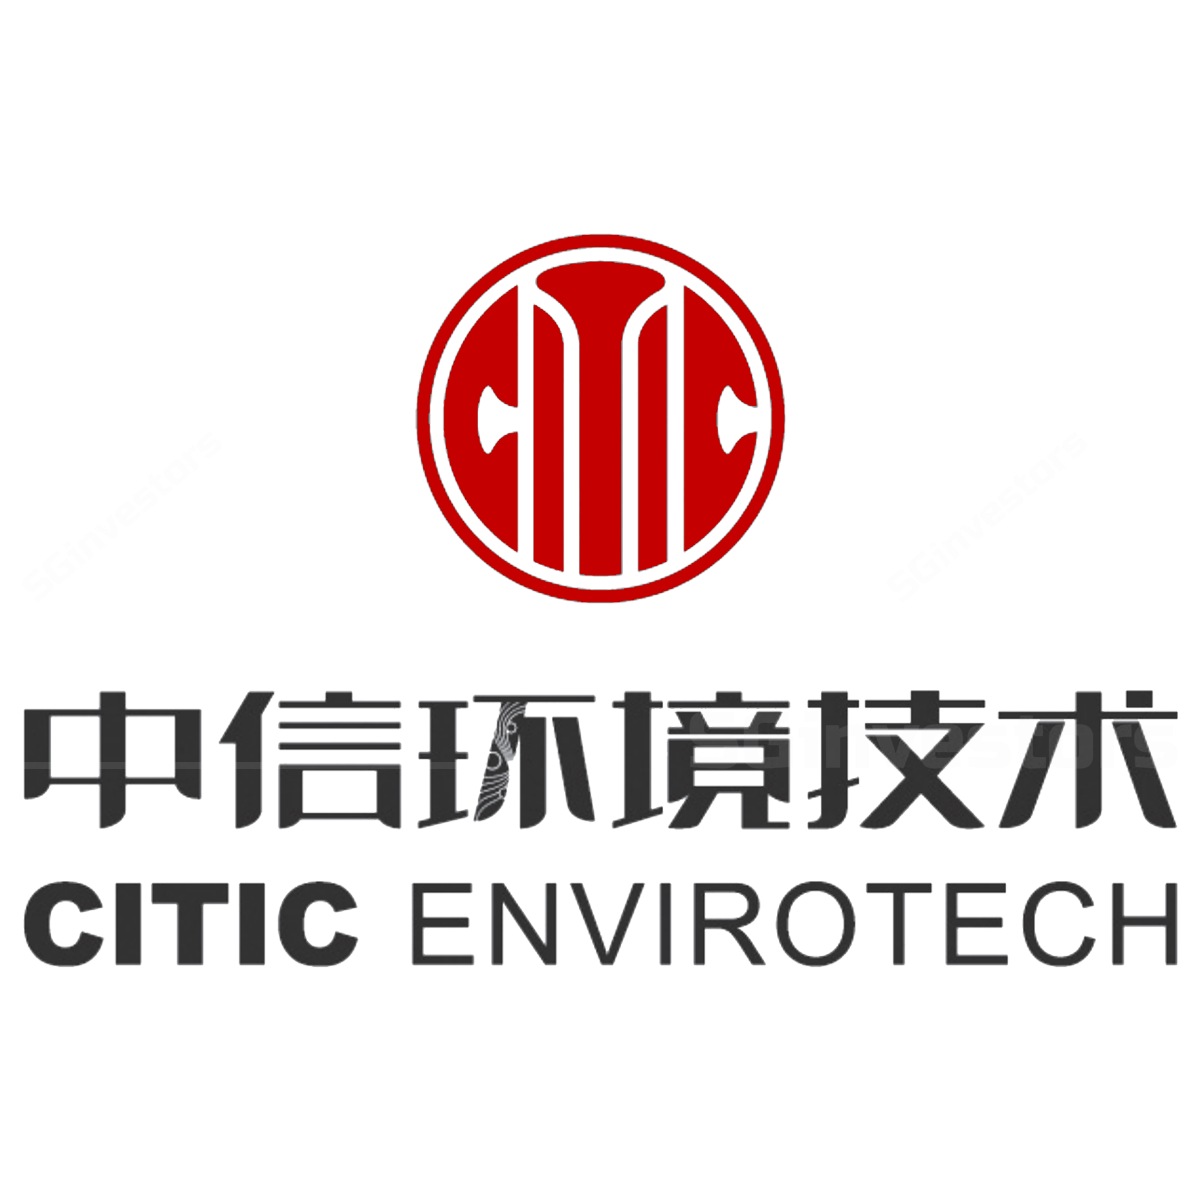 CITIC Envirotech - UOB Kay Hian 2018-06-20: Minimal Trade War Impact Amid Rosy Outlook